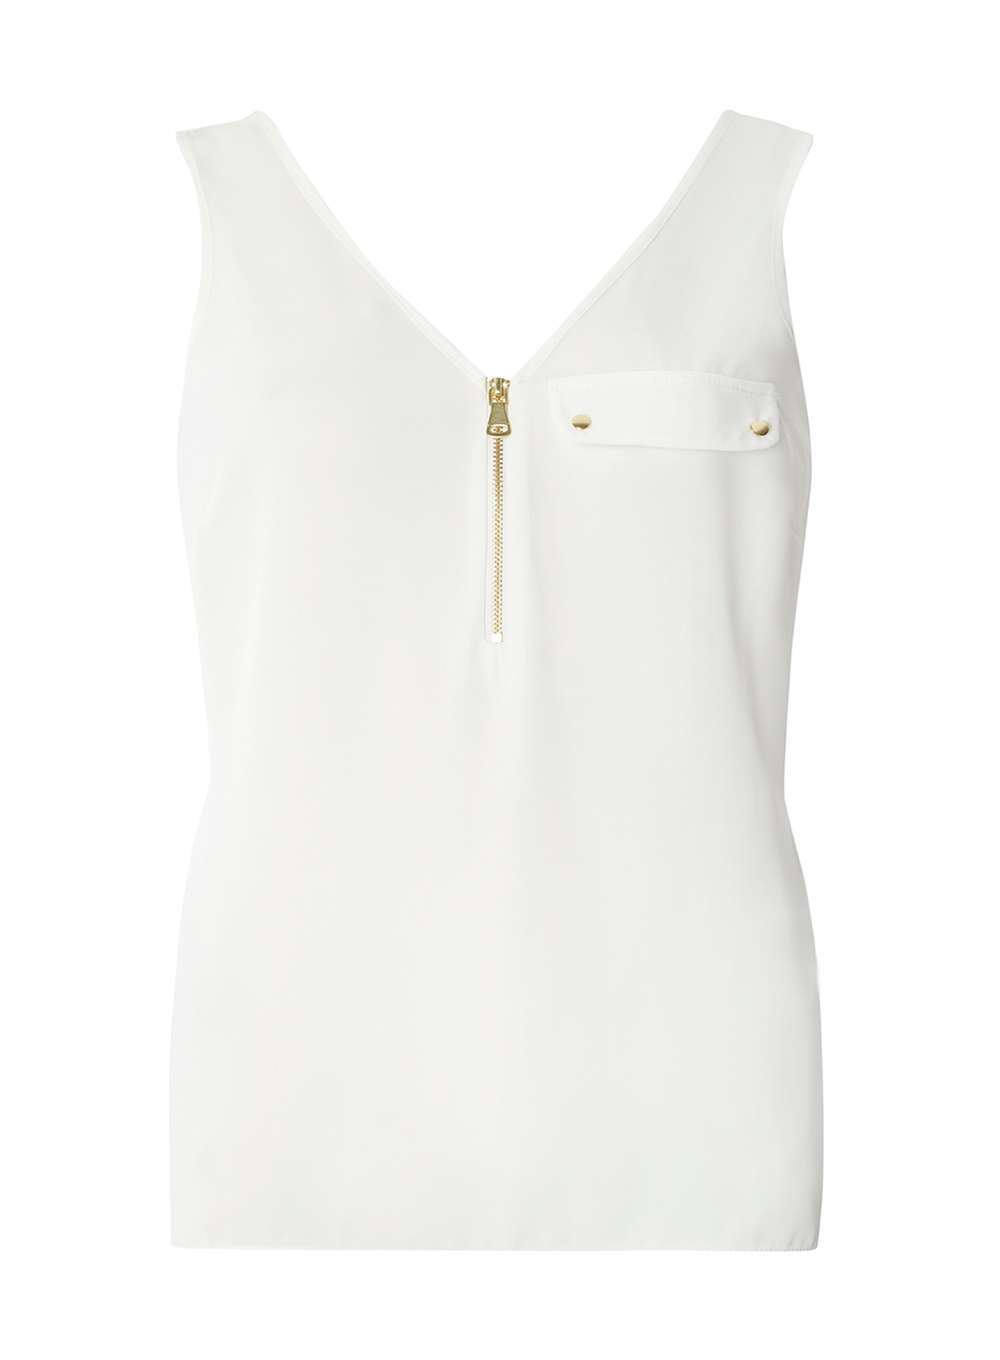 Womens White Front Zip Vest White - neckline: v-neck; pattern: plain; sleeve style: sleeveless; style: vest top; predominant colour: white; occasions: casual; length: standard; fibres: polyester/polyamide - 100%; fit: body skimming; sleeve length: sleeveless; texture group: sheer fabrics/chiffon/organza etc.; pattern type: fabric; wardrobe: basic; season: a/w 2016; embellishment location: bust